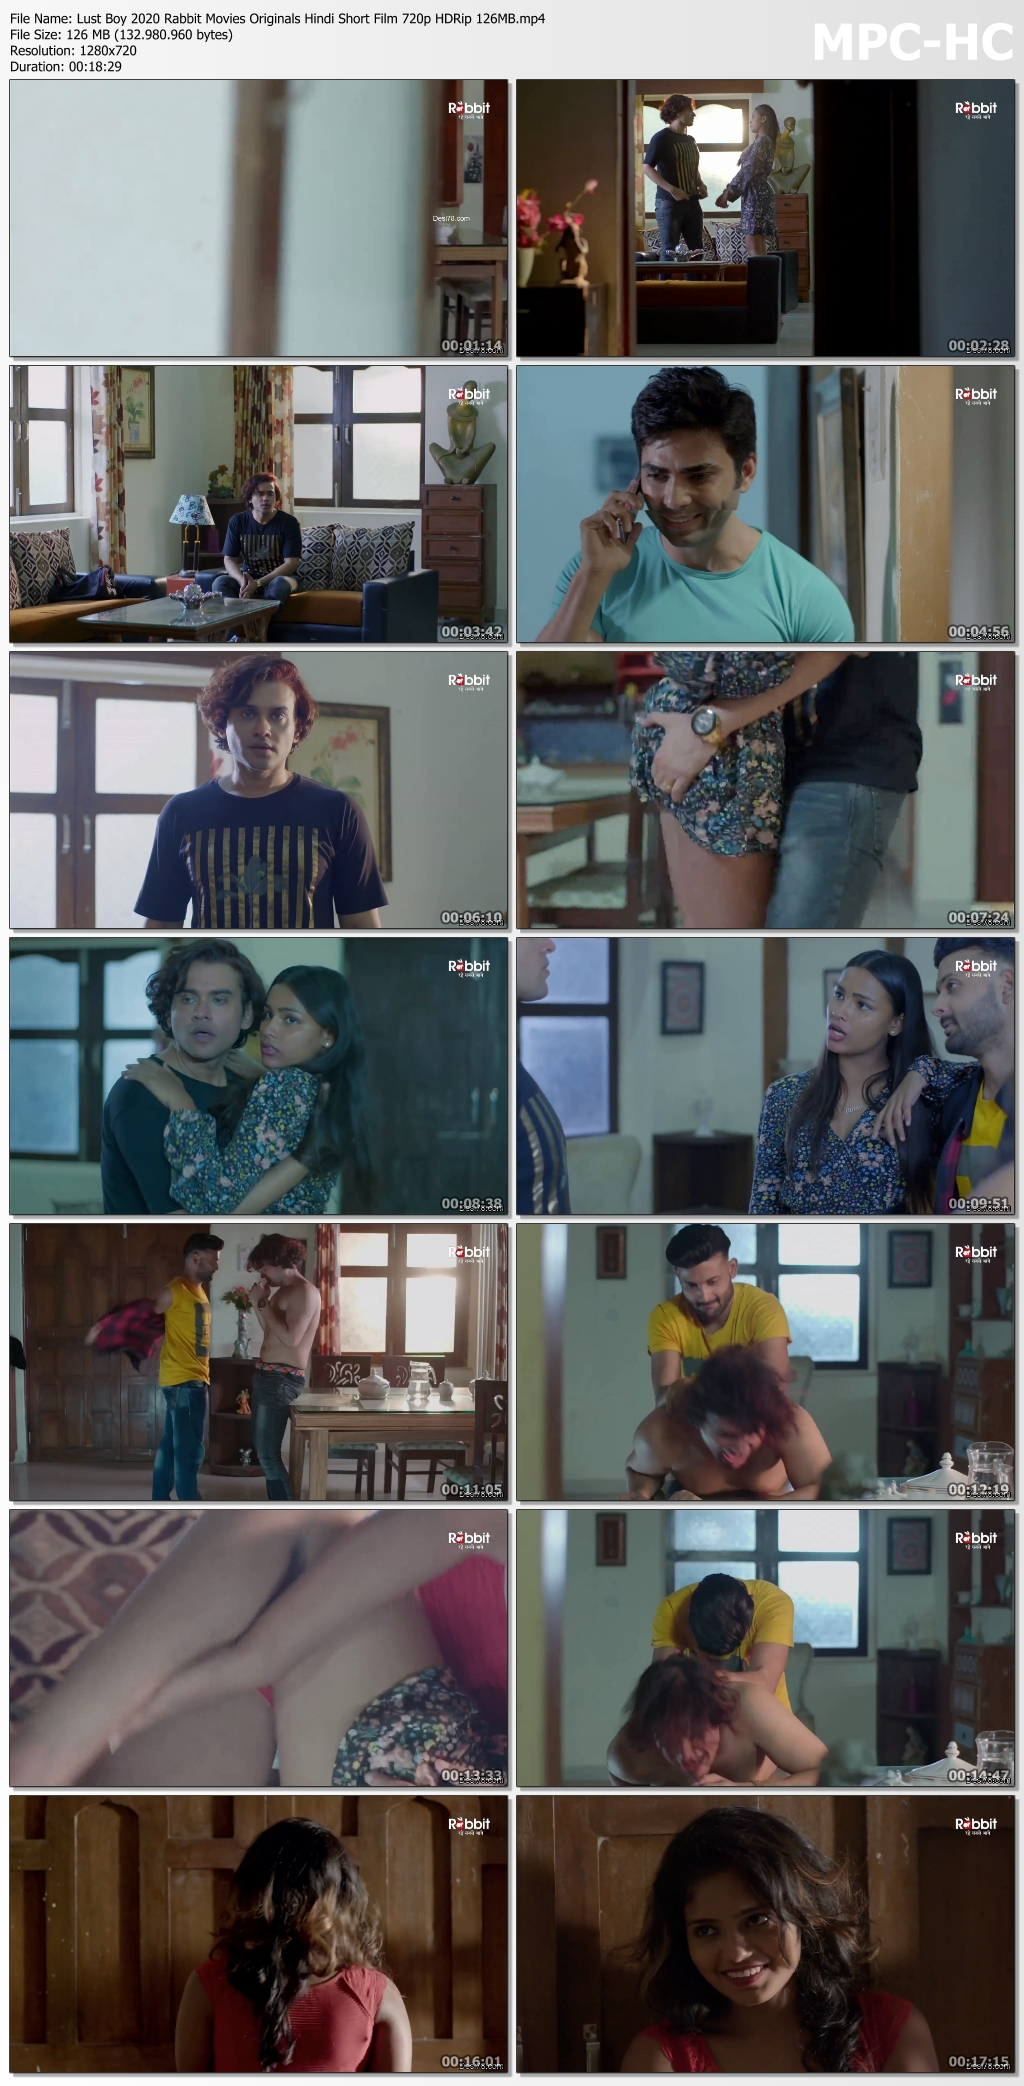 Lust-Boy-2020-Rabbit-Movies-Originals-Hindi-Short-Film-720p-HDRip-126-MB-mp4-thumbs